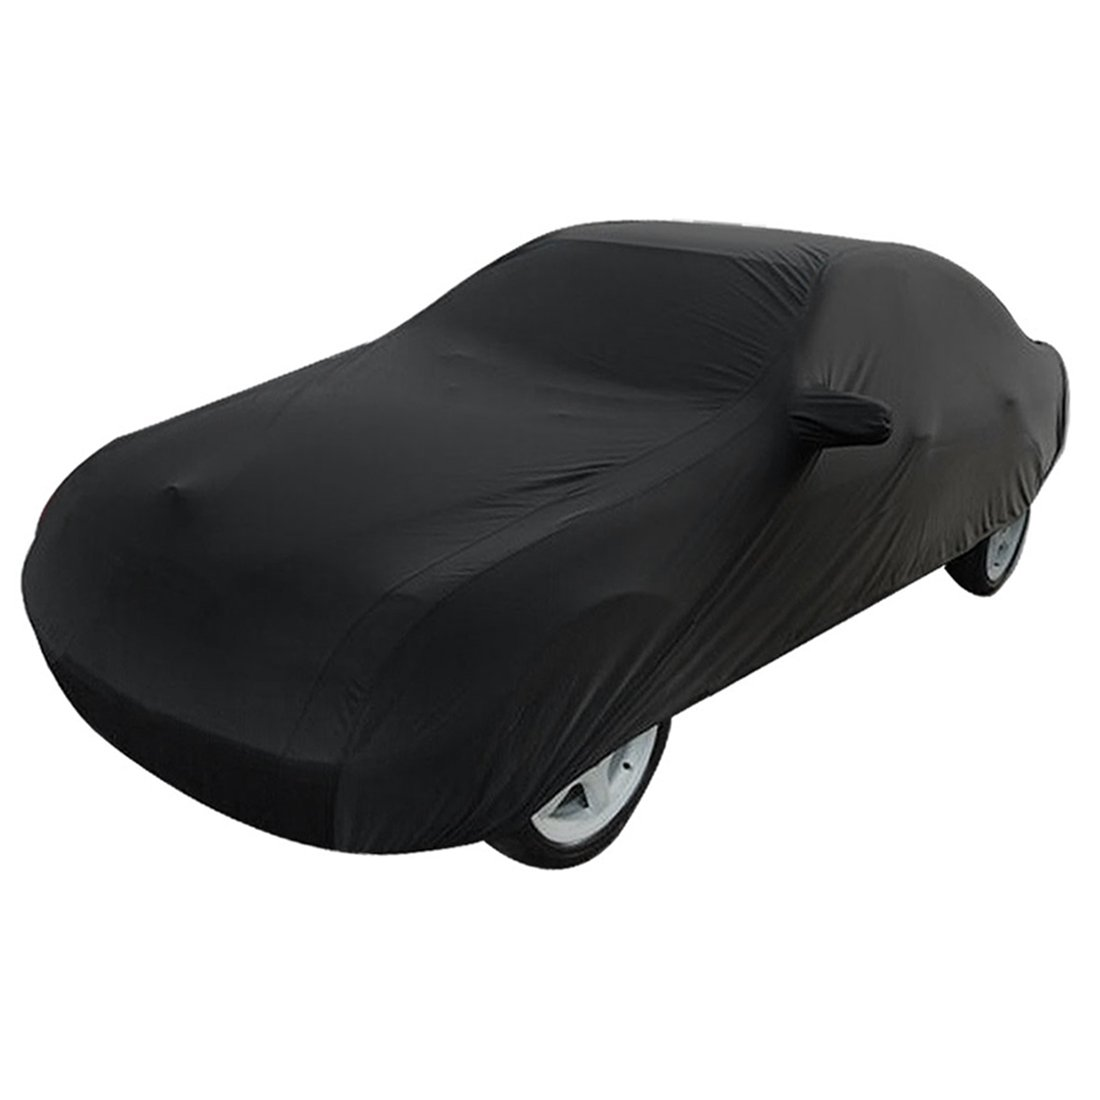 uxcell 3XXL 530cm 190T Black Stormproof Breathable Outdoor Indoor Car Cover US-SA-AJD-41115